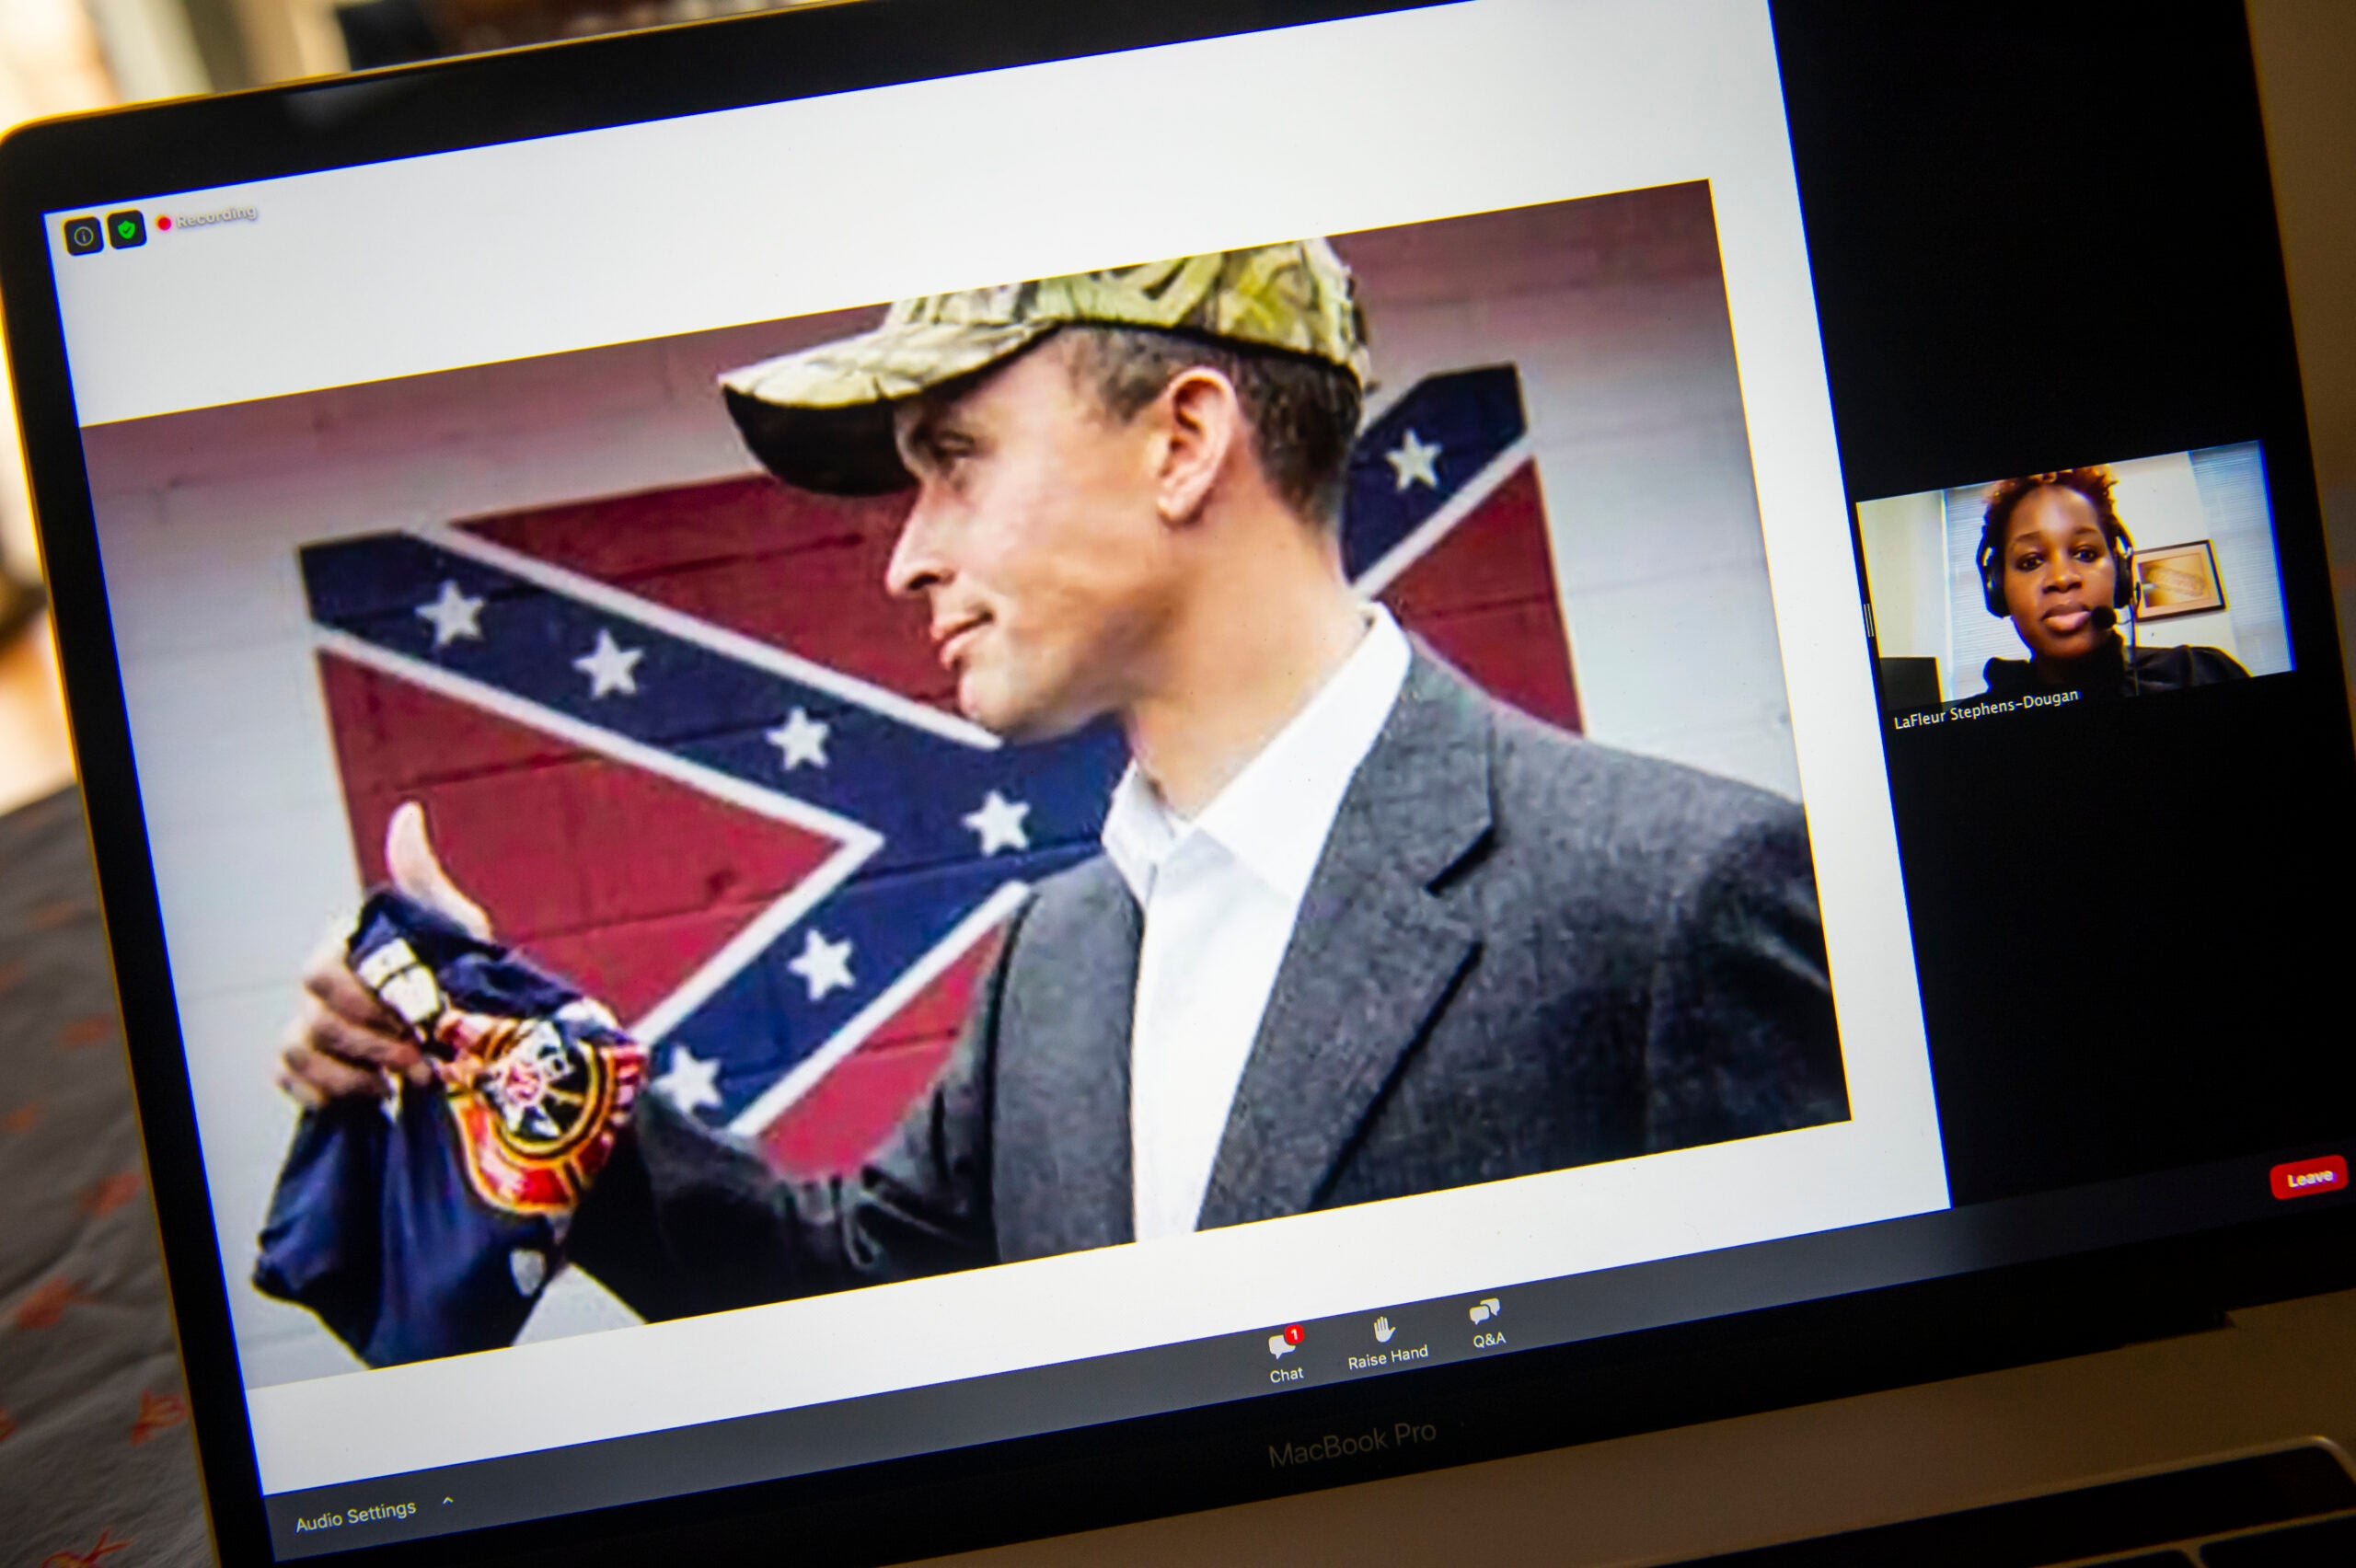 Politician with a Confederate flag behind him.